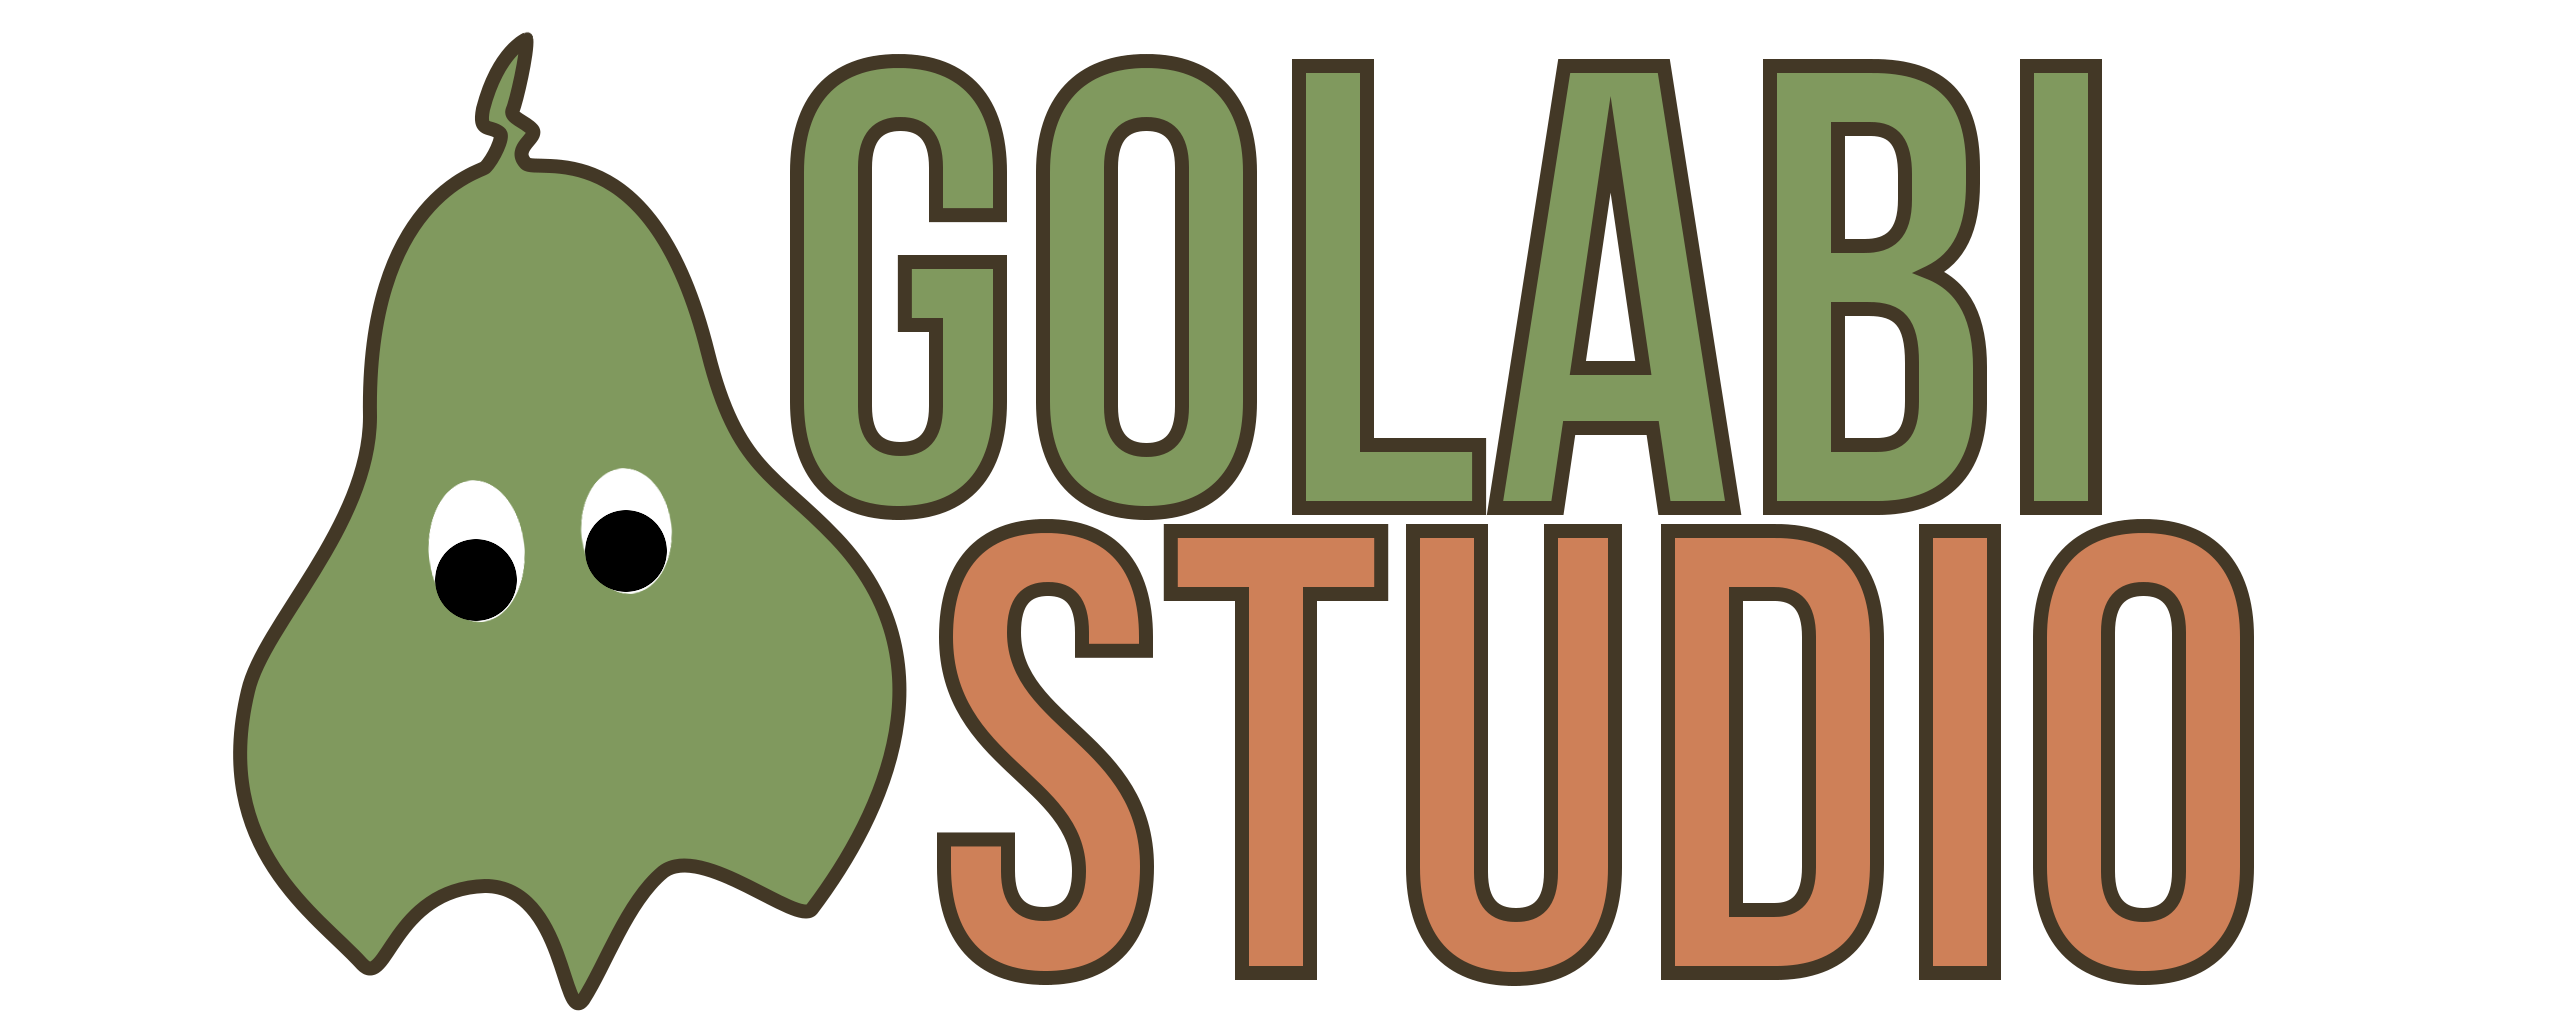 Golabi studio - Application and Game development